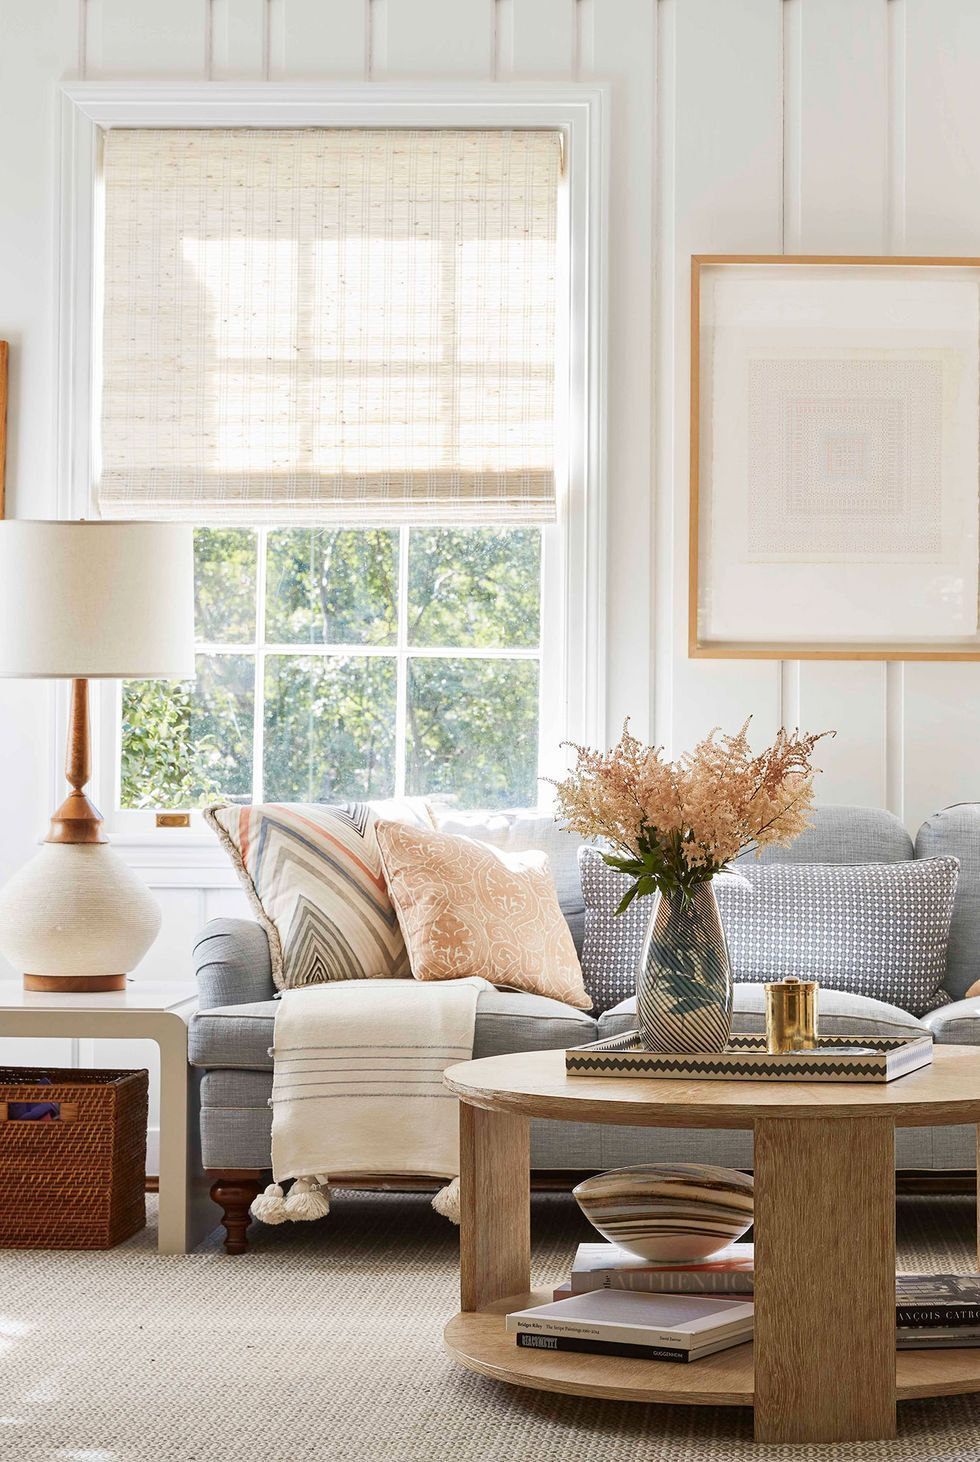 There is a growing demand for residential care (or assisted living) facilities that provide accommodation and personal care services primarily to older adults. 17 Best Small Living Room Ideas - How to Decorate a Small ...